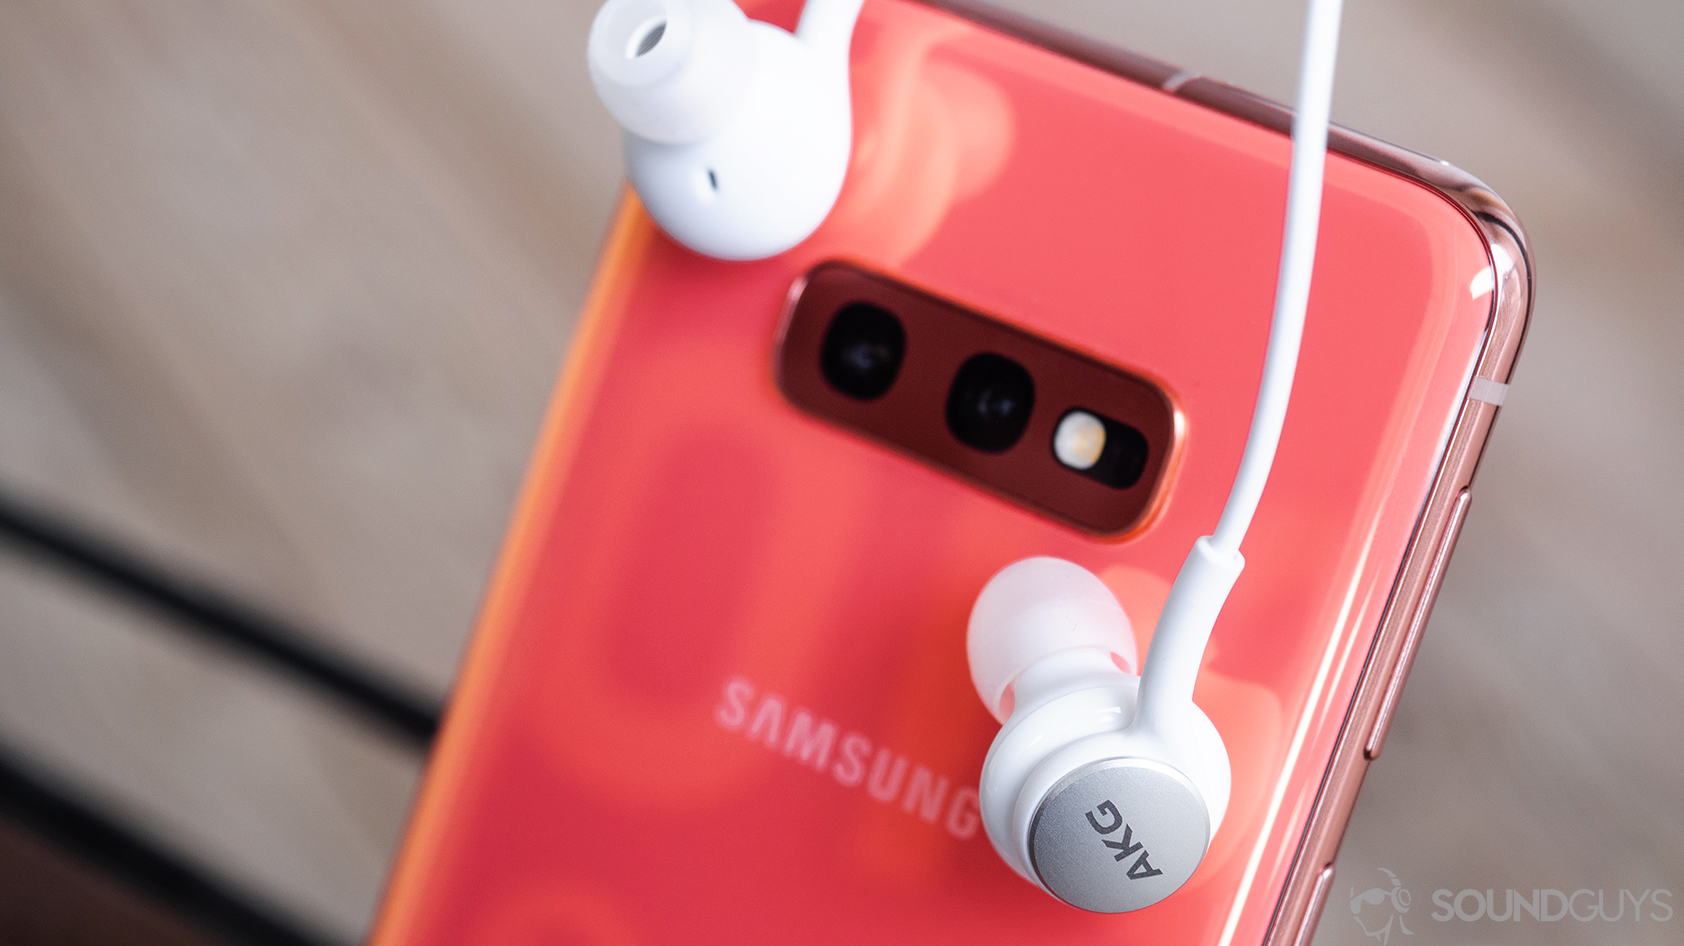 Was ditching the headphone jack a good idea? - SoundGuys